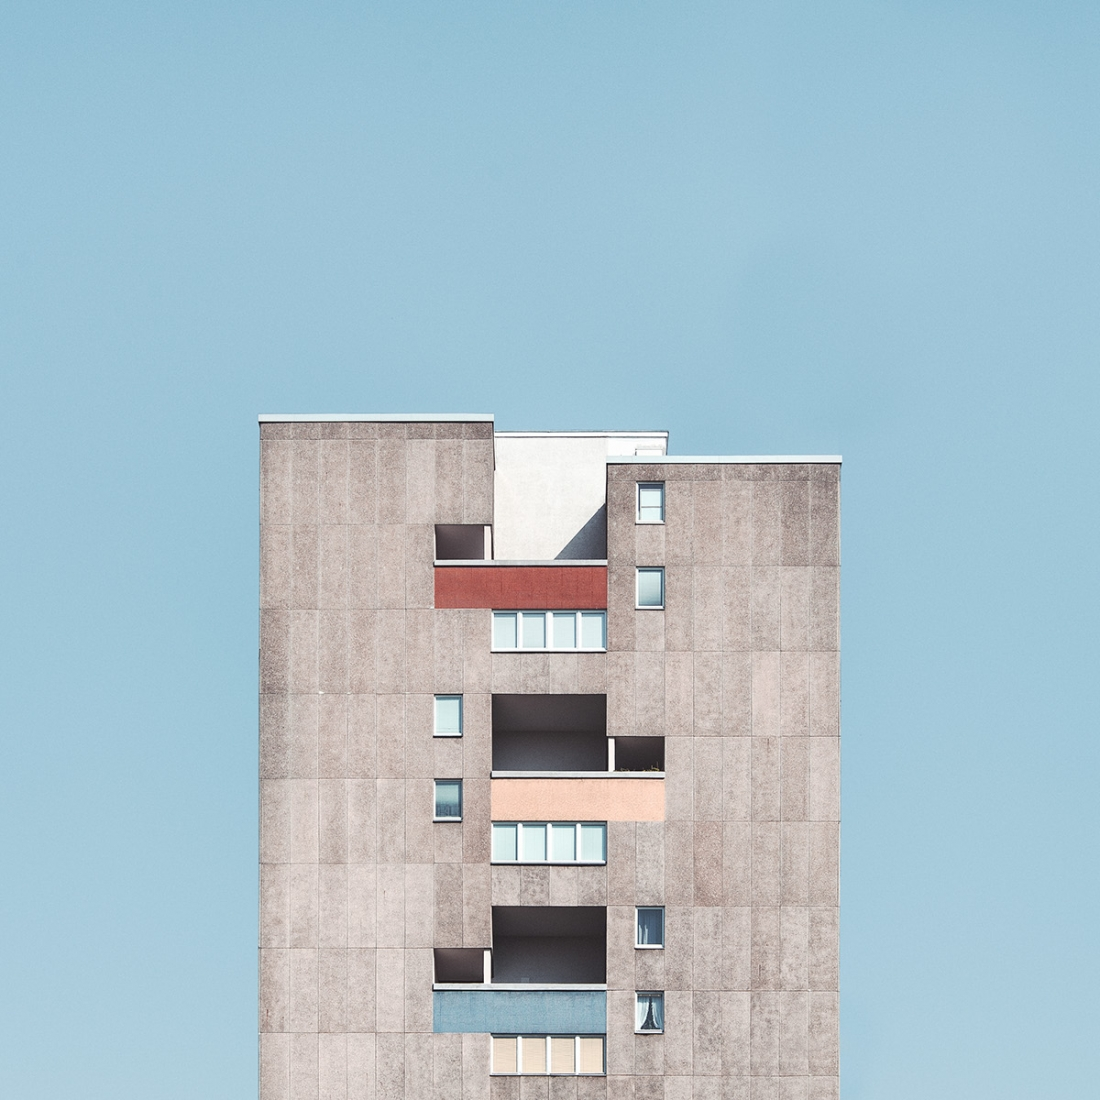 Stacked: A stunning visual documentation of the post-war housing estates of Berlin